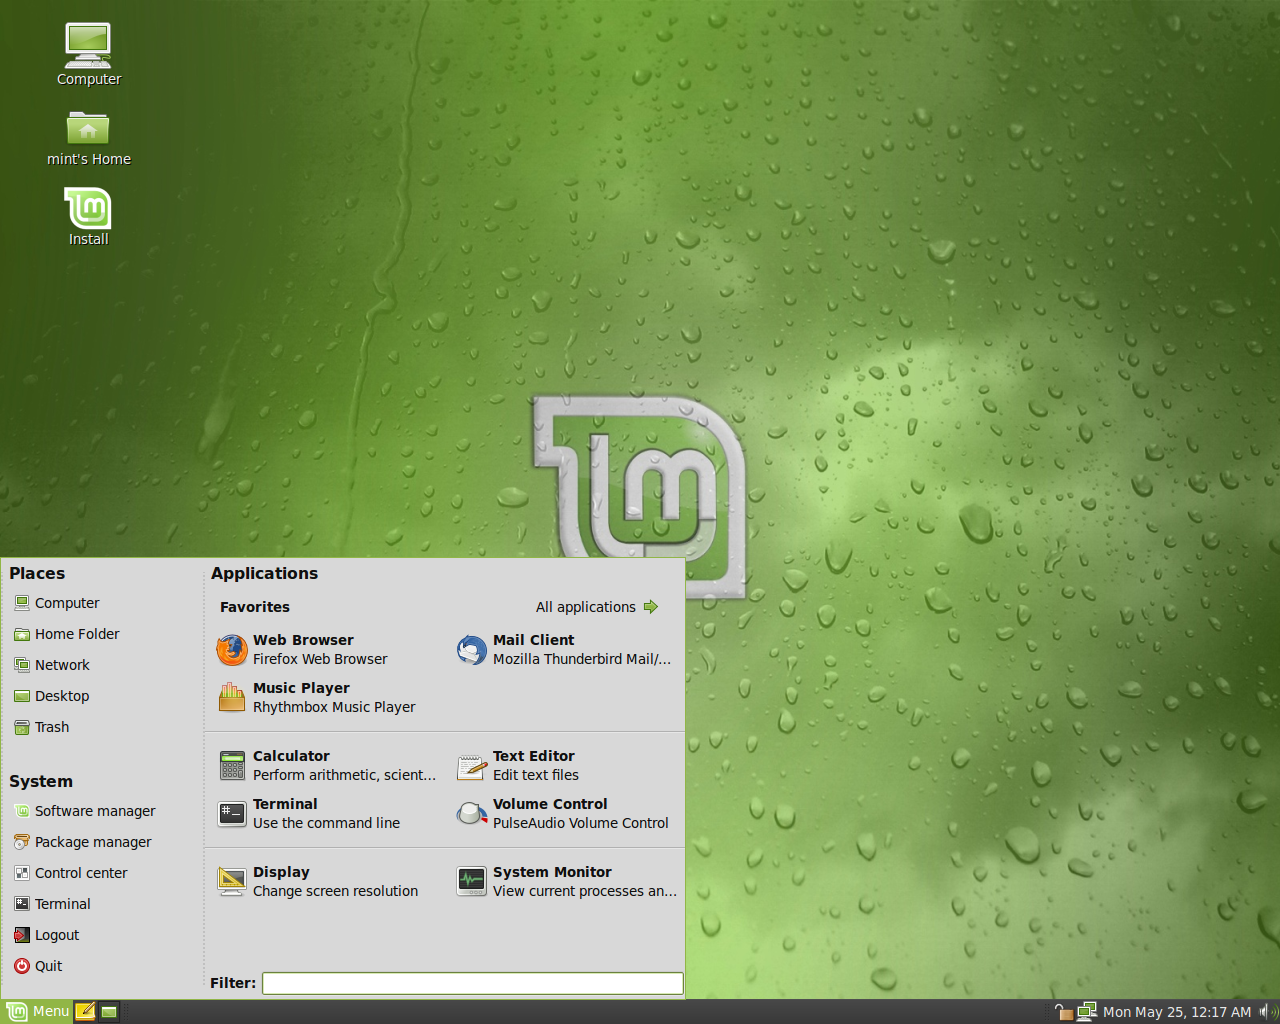 Buy Linux Mint 7 XFCE CD i386 at Rainbowcomputech Com for Rs 40